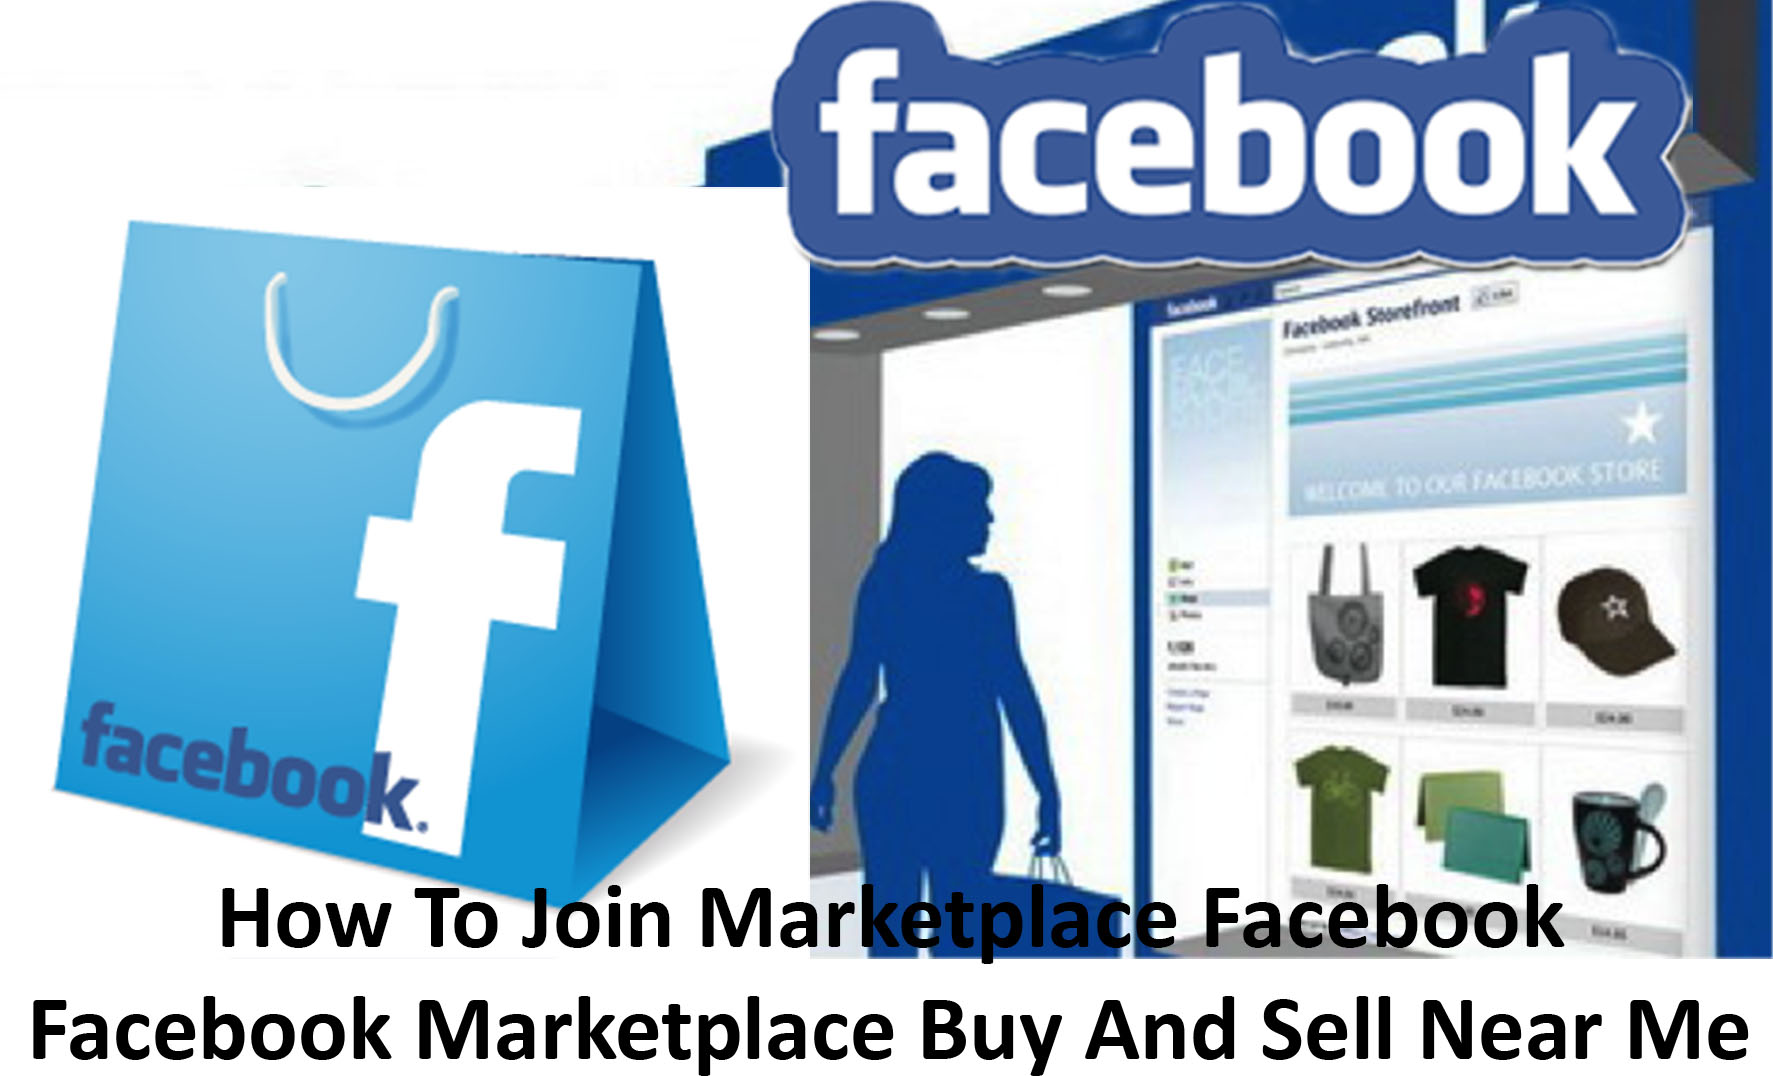 How To Join Marketplace Facebook - Facebook Marketplace Buy And Sell Near Me